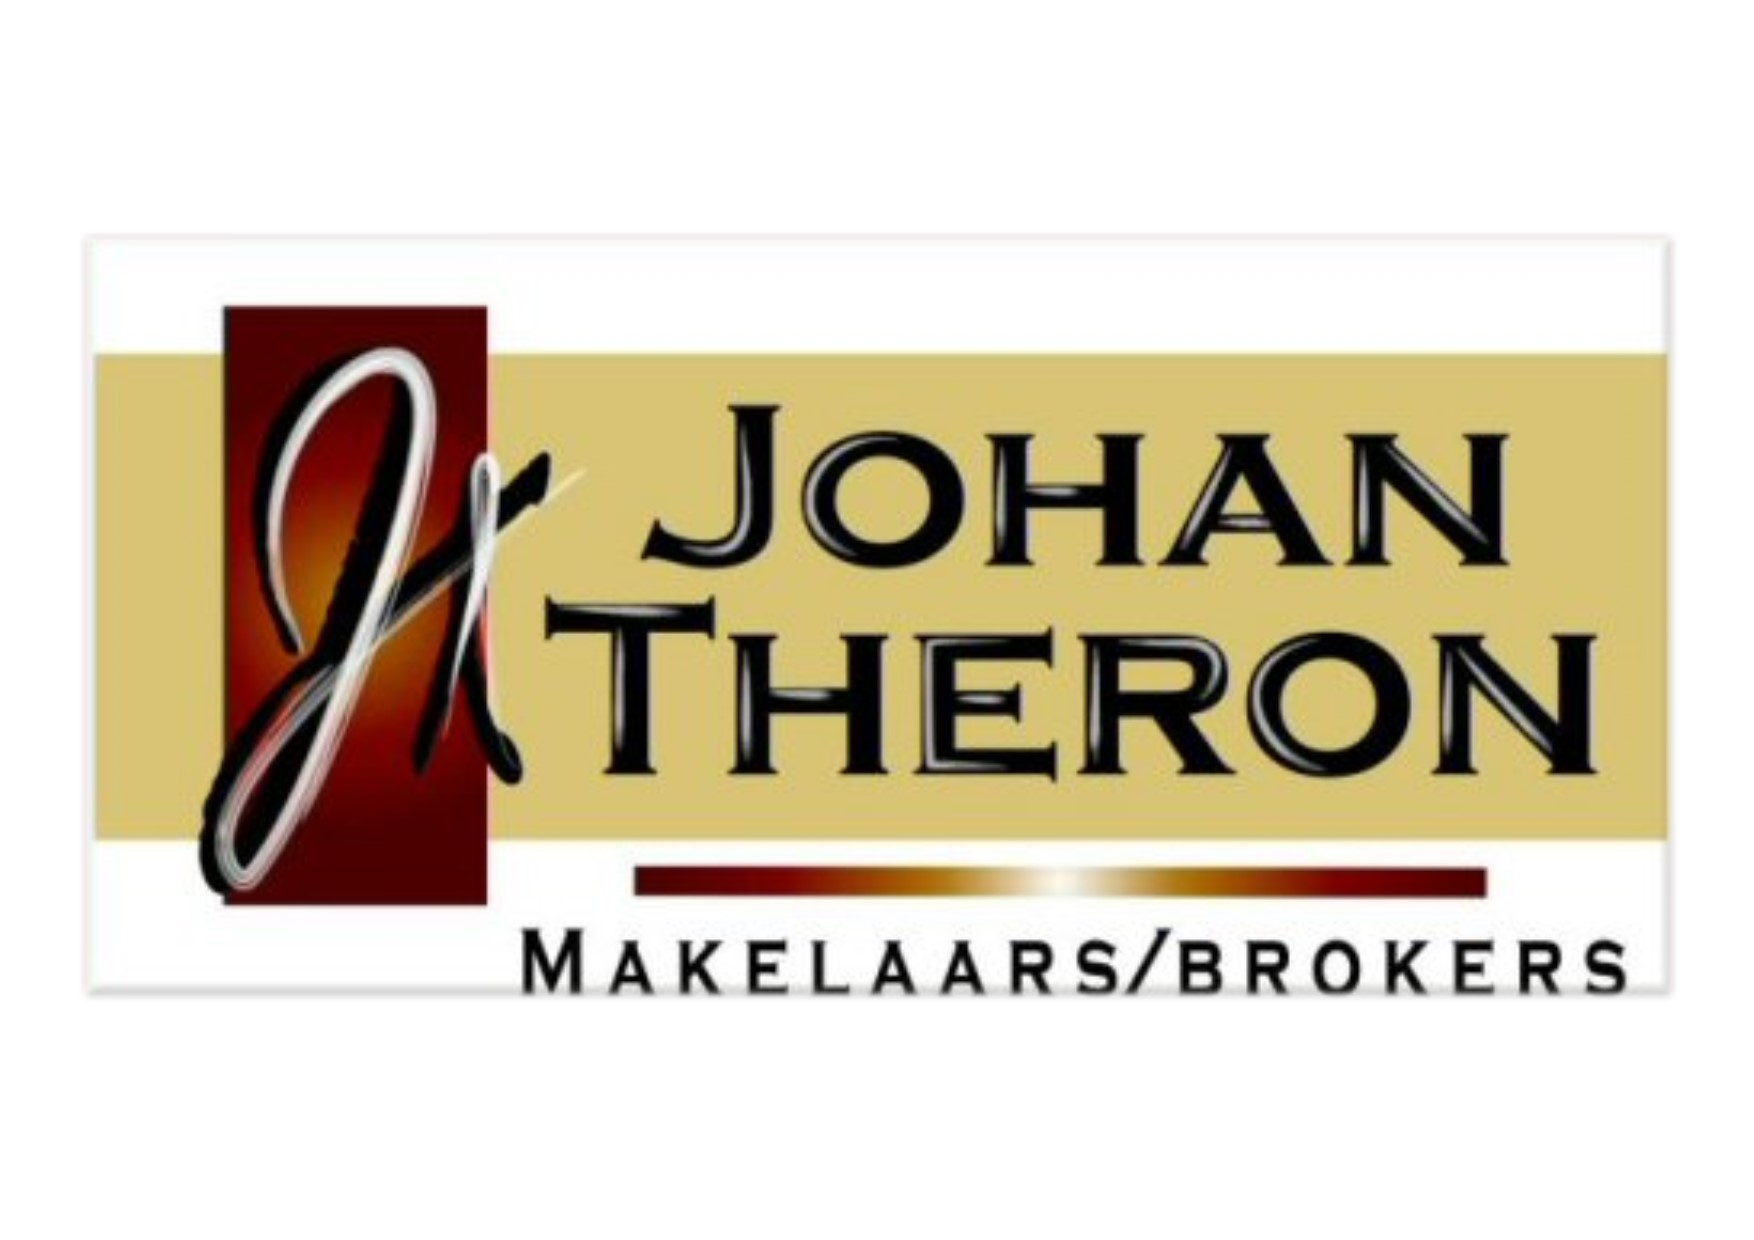 Johan Theron Brokers